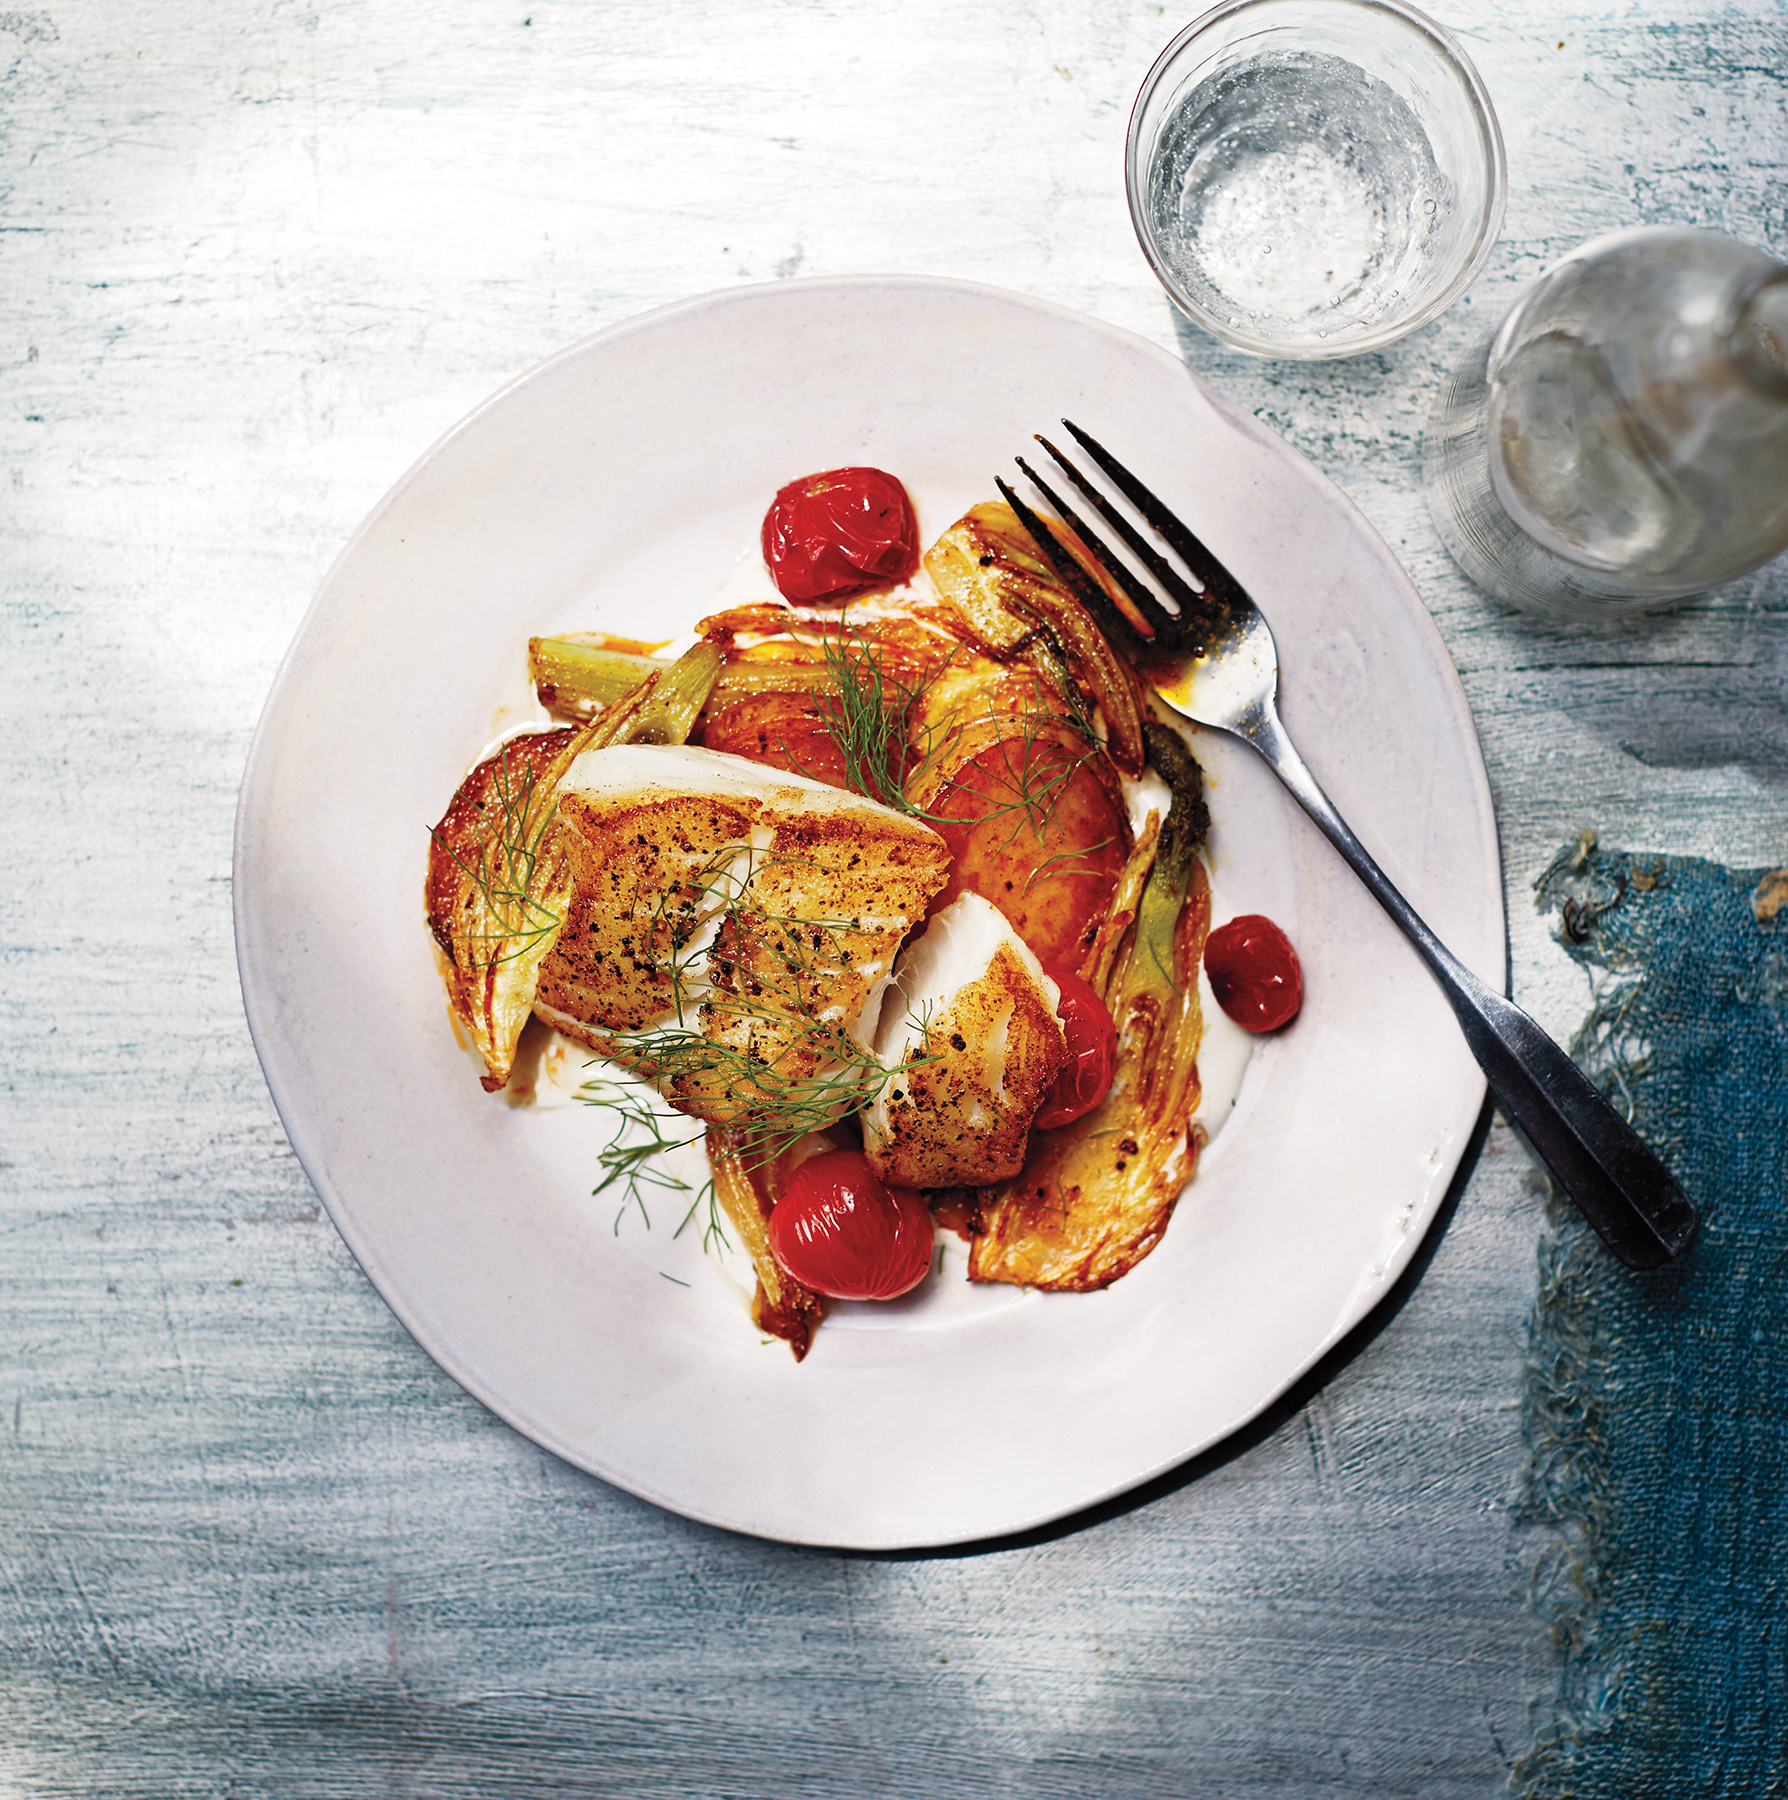 Roasted Cod with Potatoes, Fennel, and Tomatoes